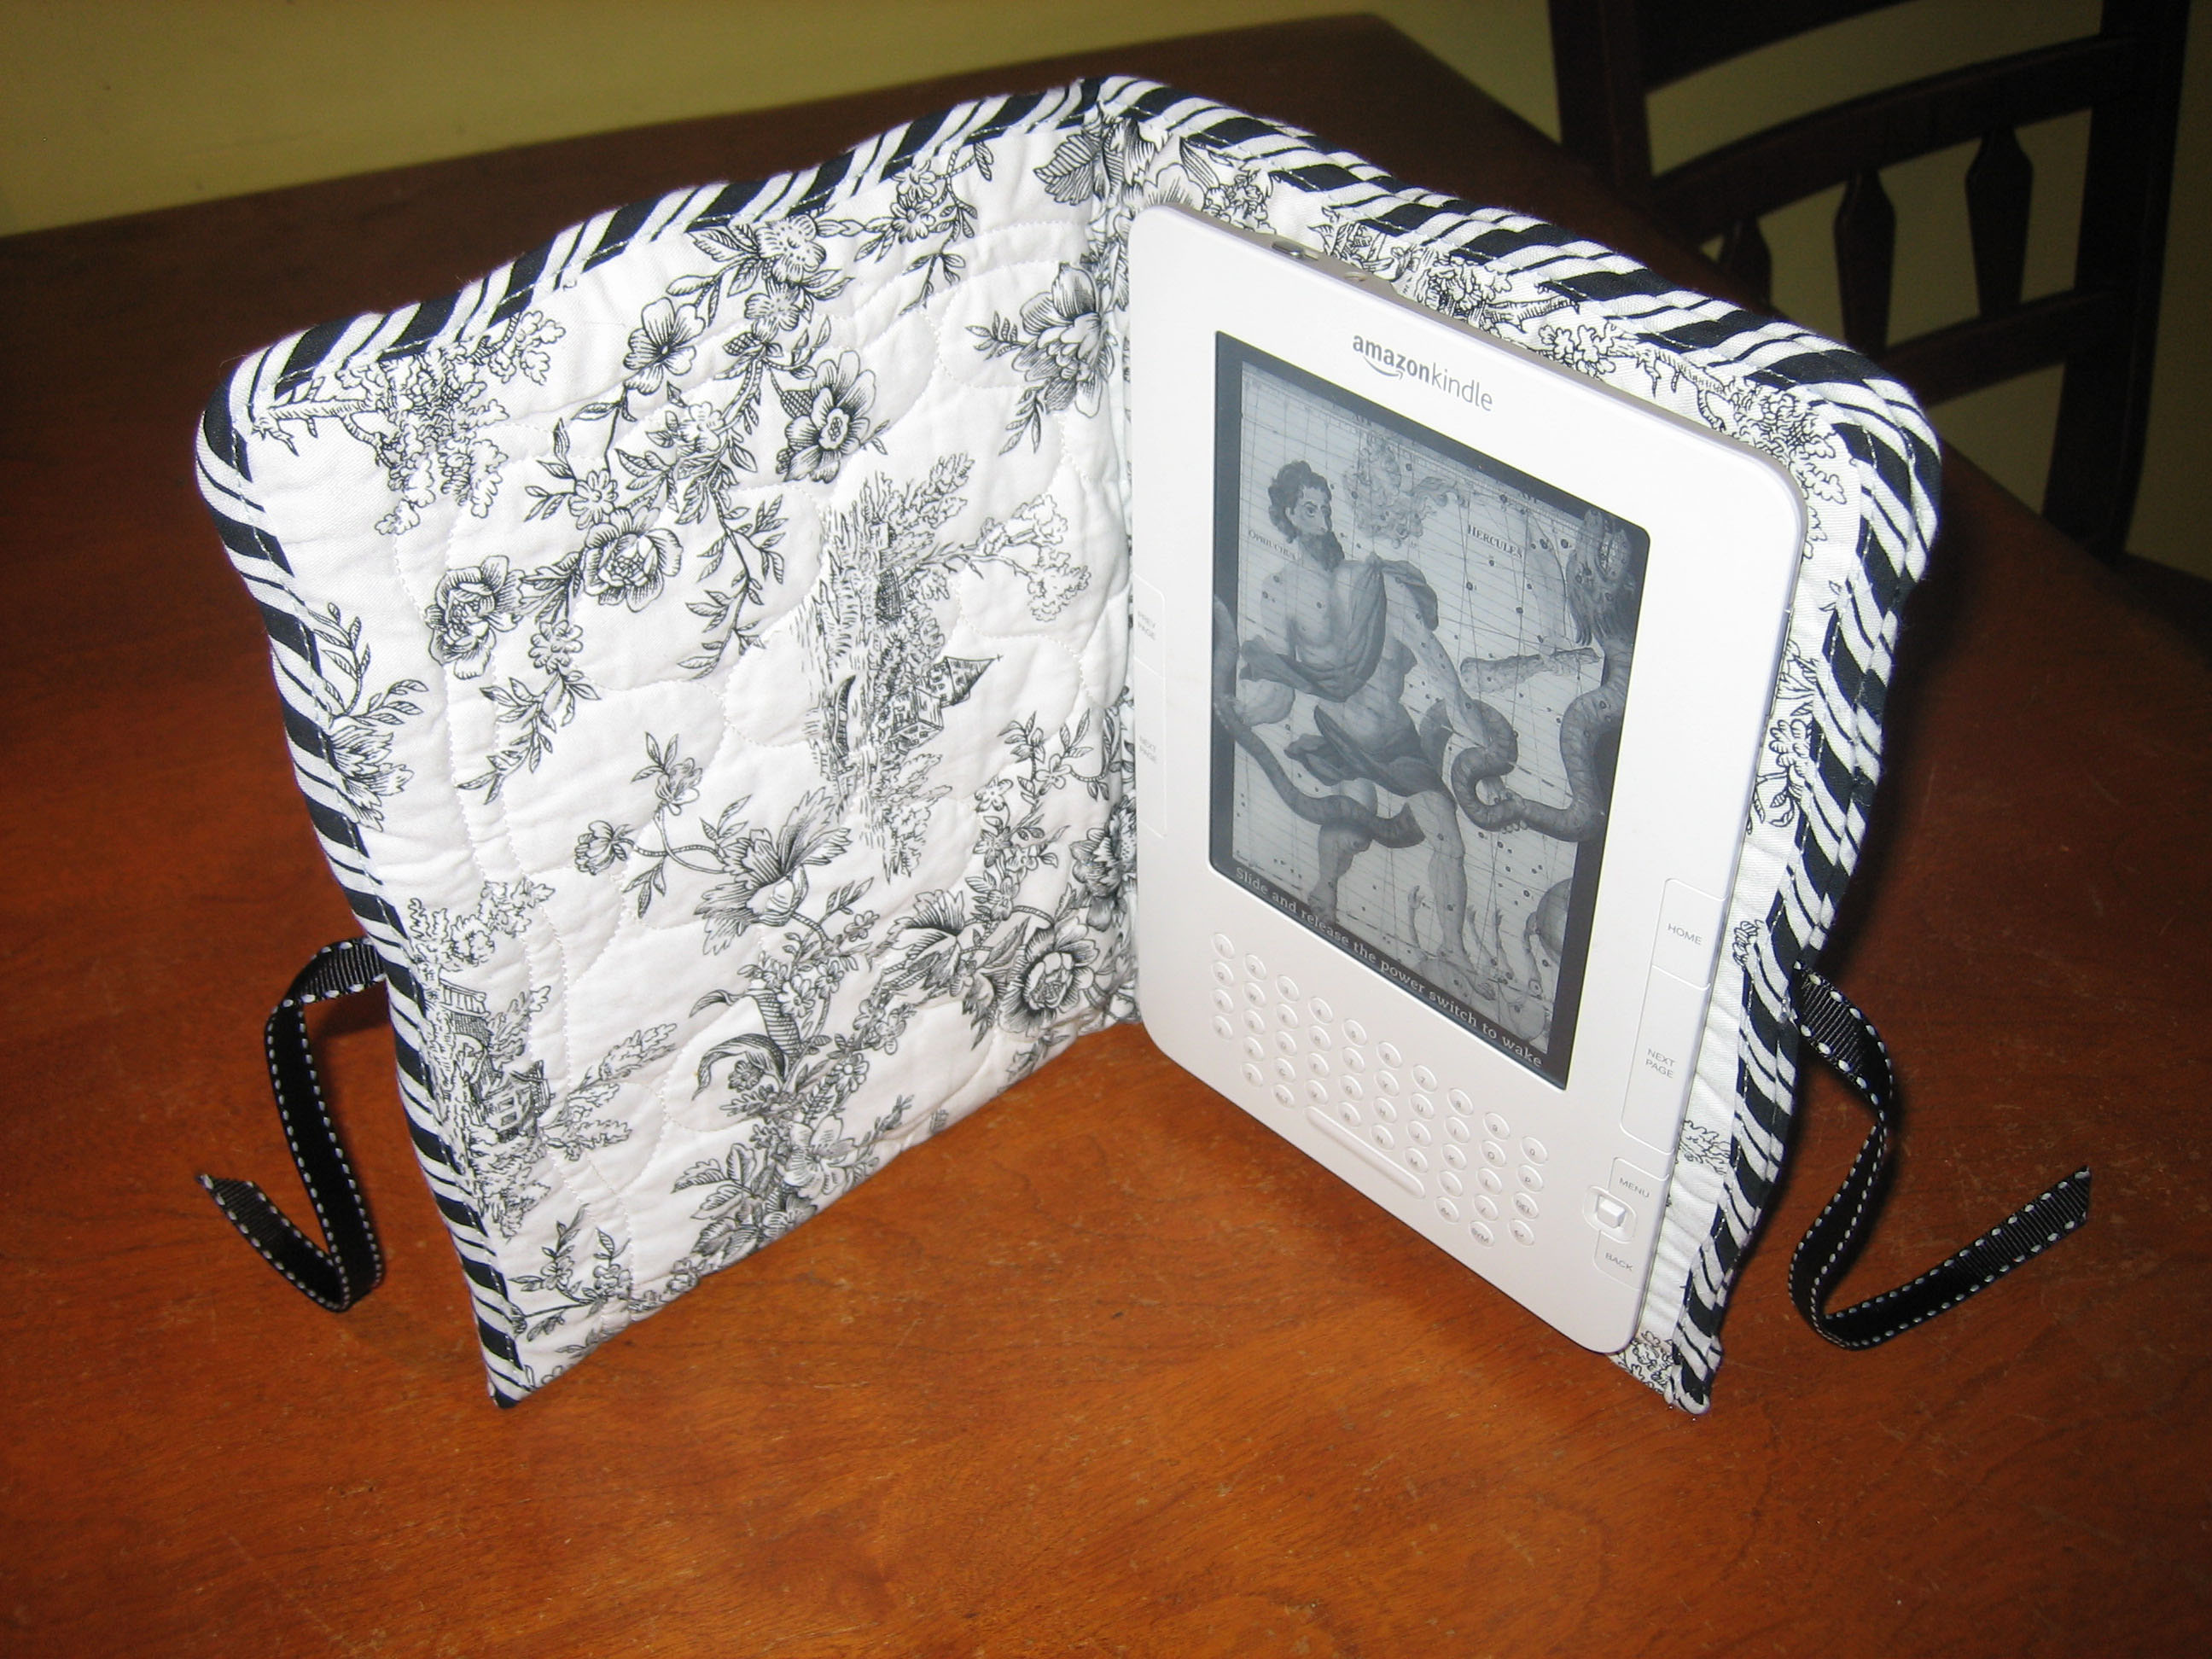 Diy Book Cover For Kindle : C e grundler s easy no sew padded diy kindle cover